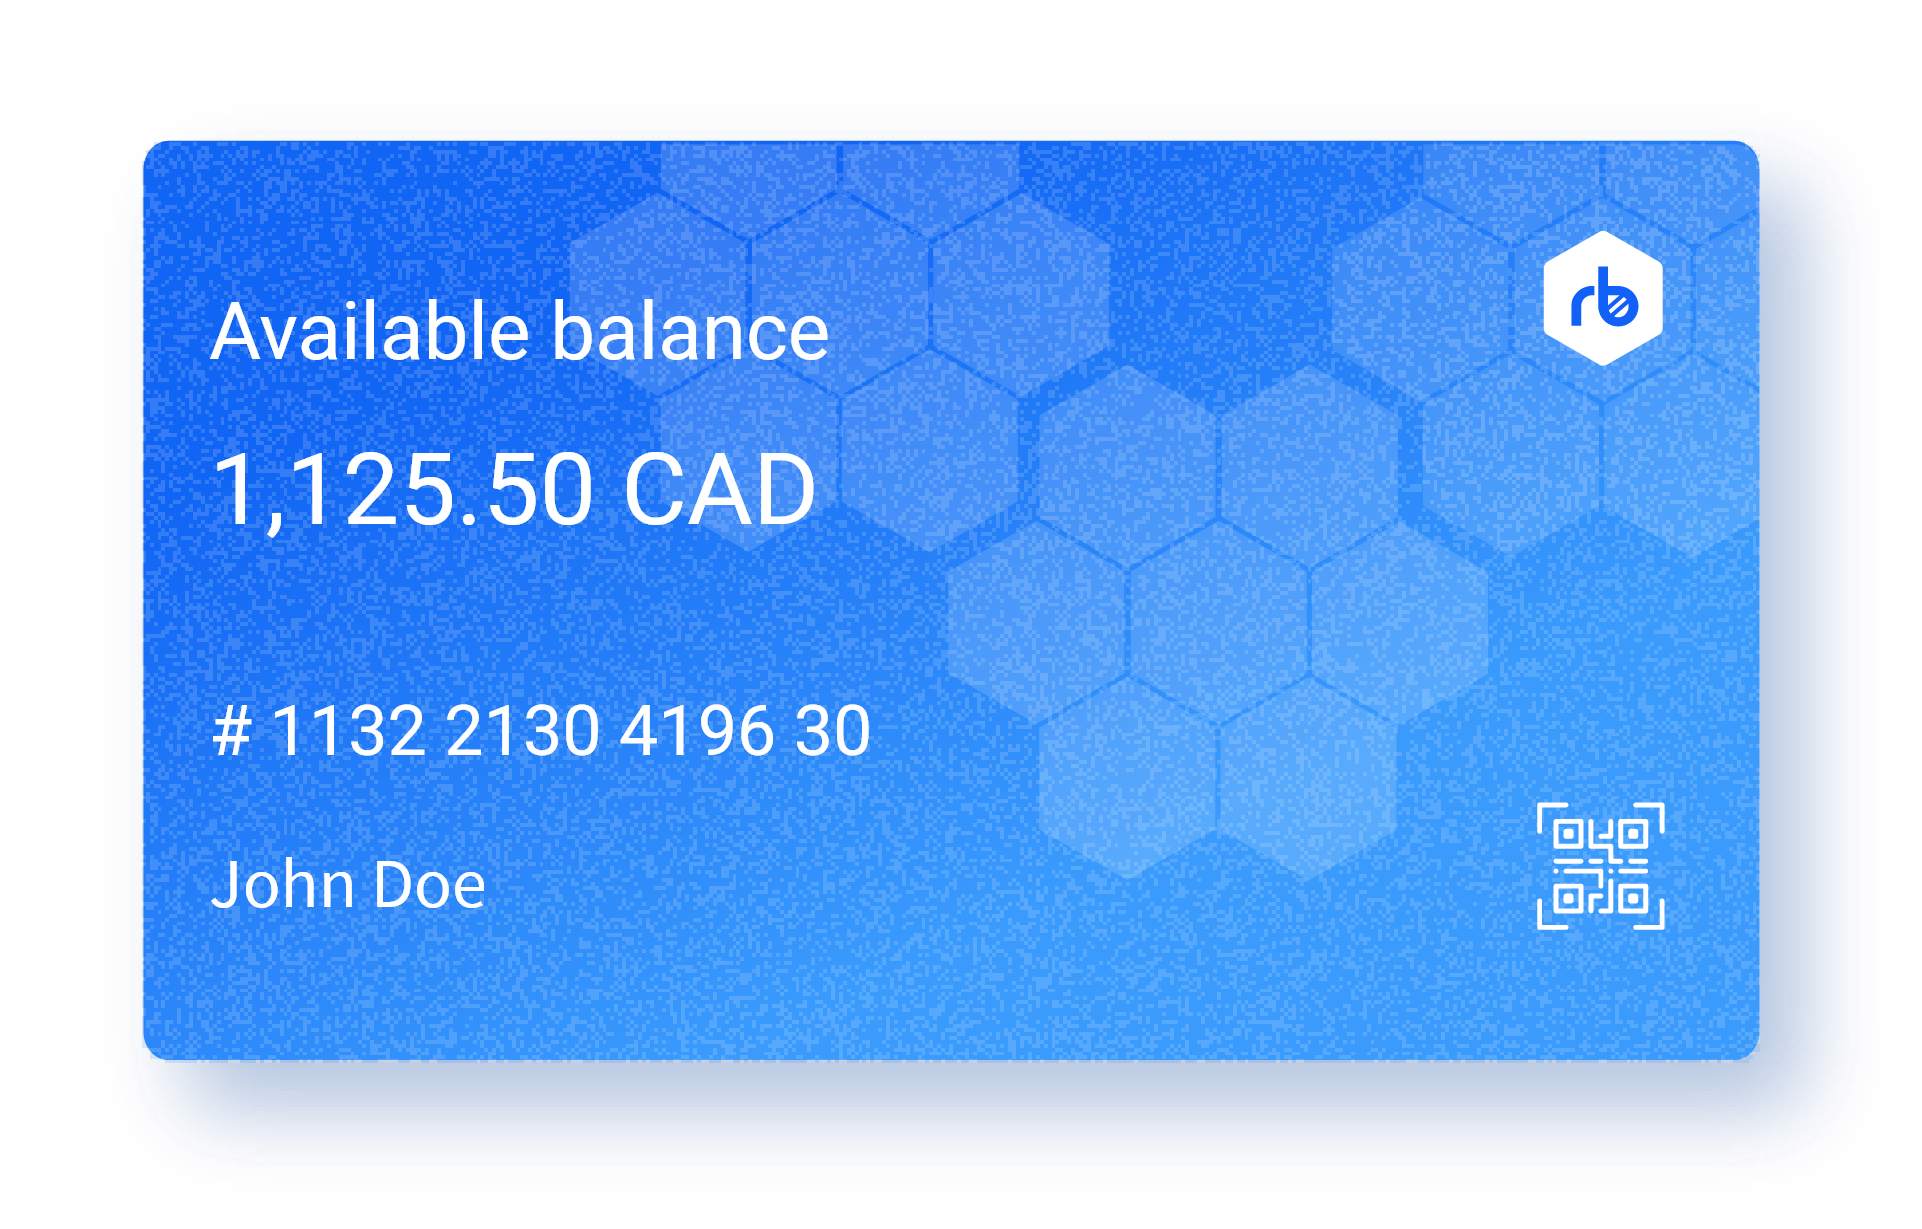 Remitbee Wallet